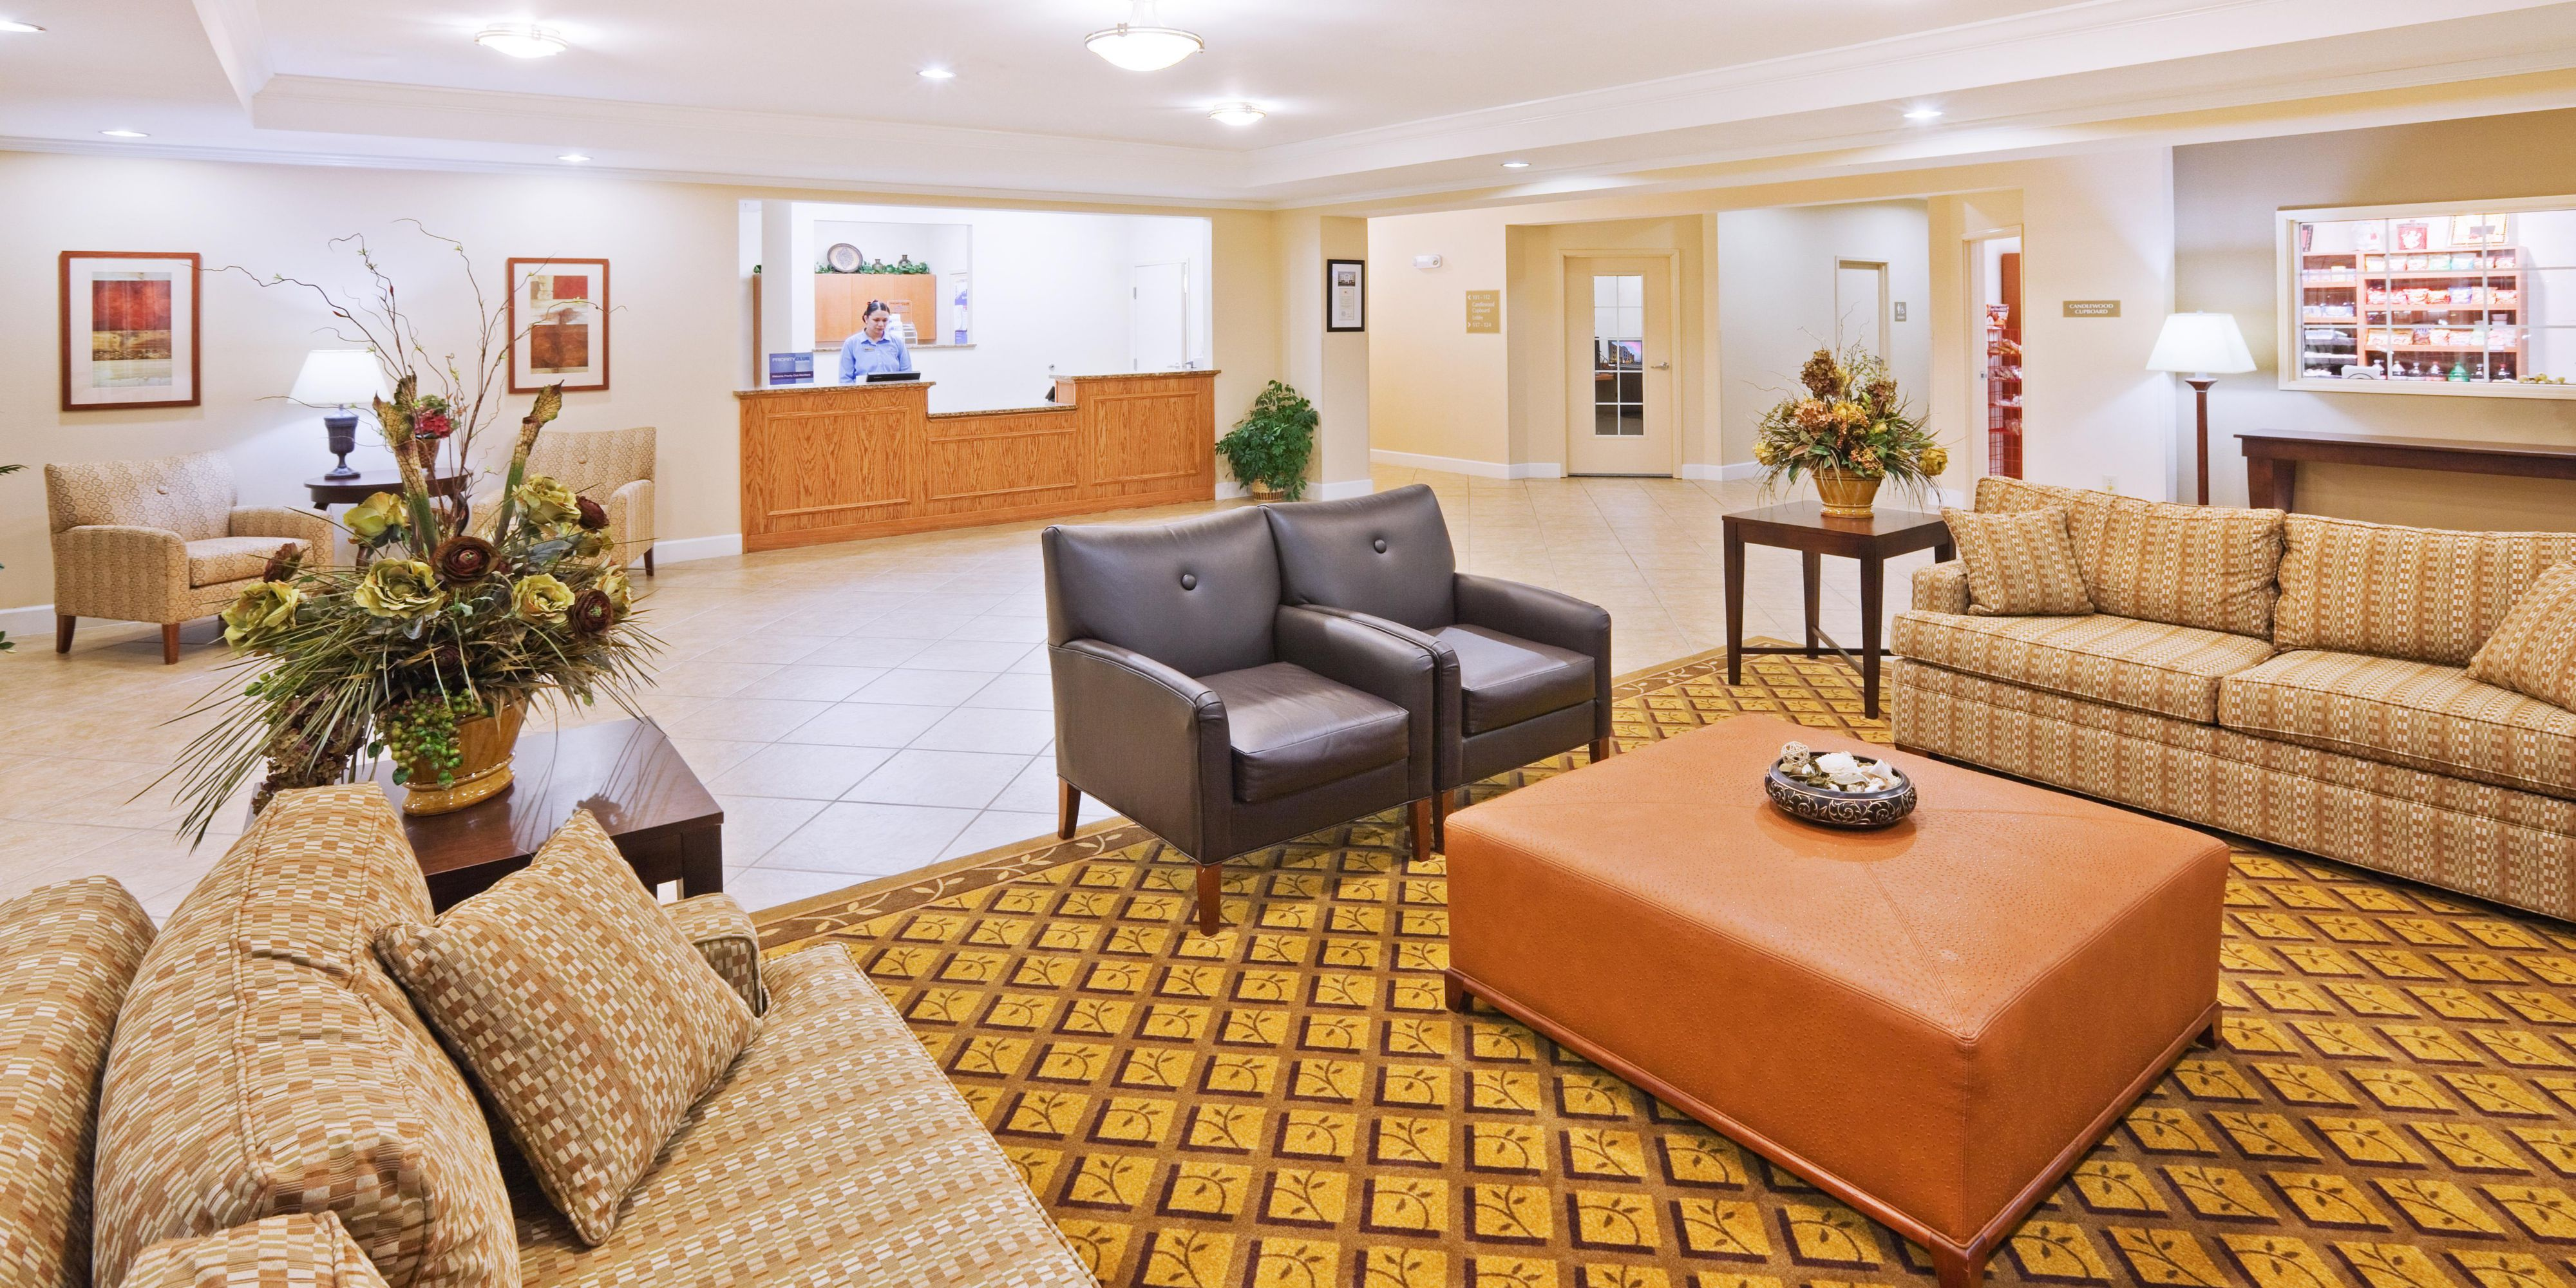 Mcalester Hotels: Candlewood Suites Mcalester   Extended Stay Hotel In  Mcalester, Oklahoma